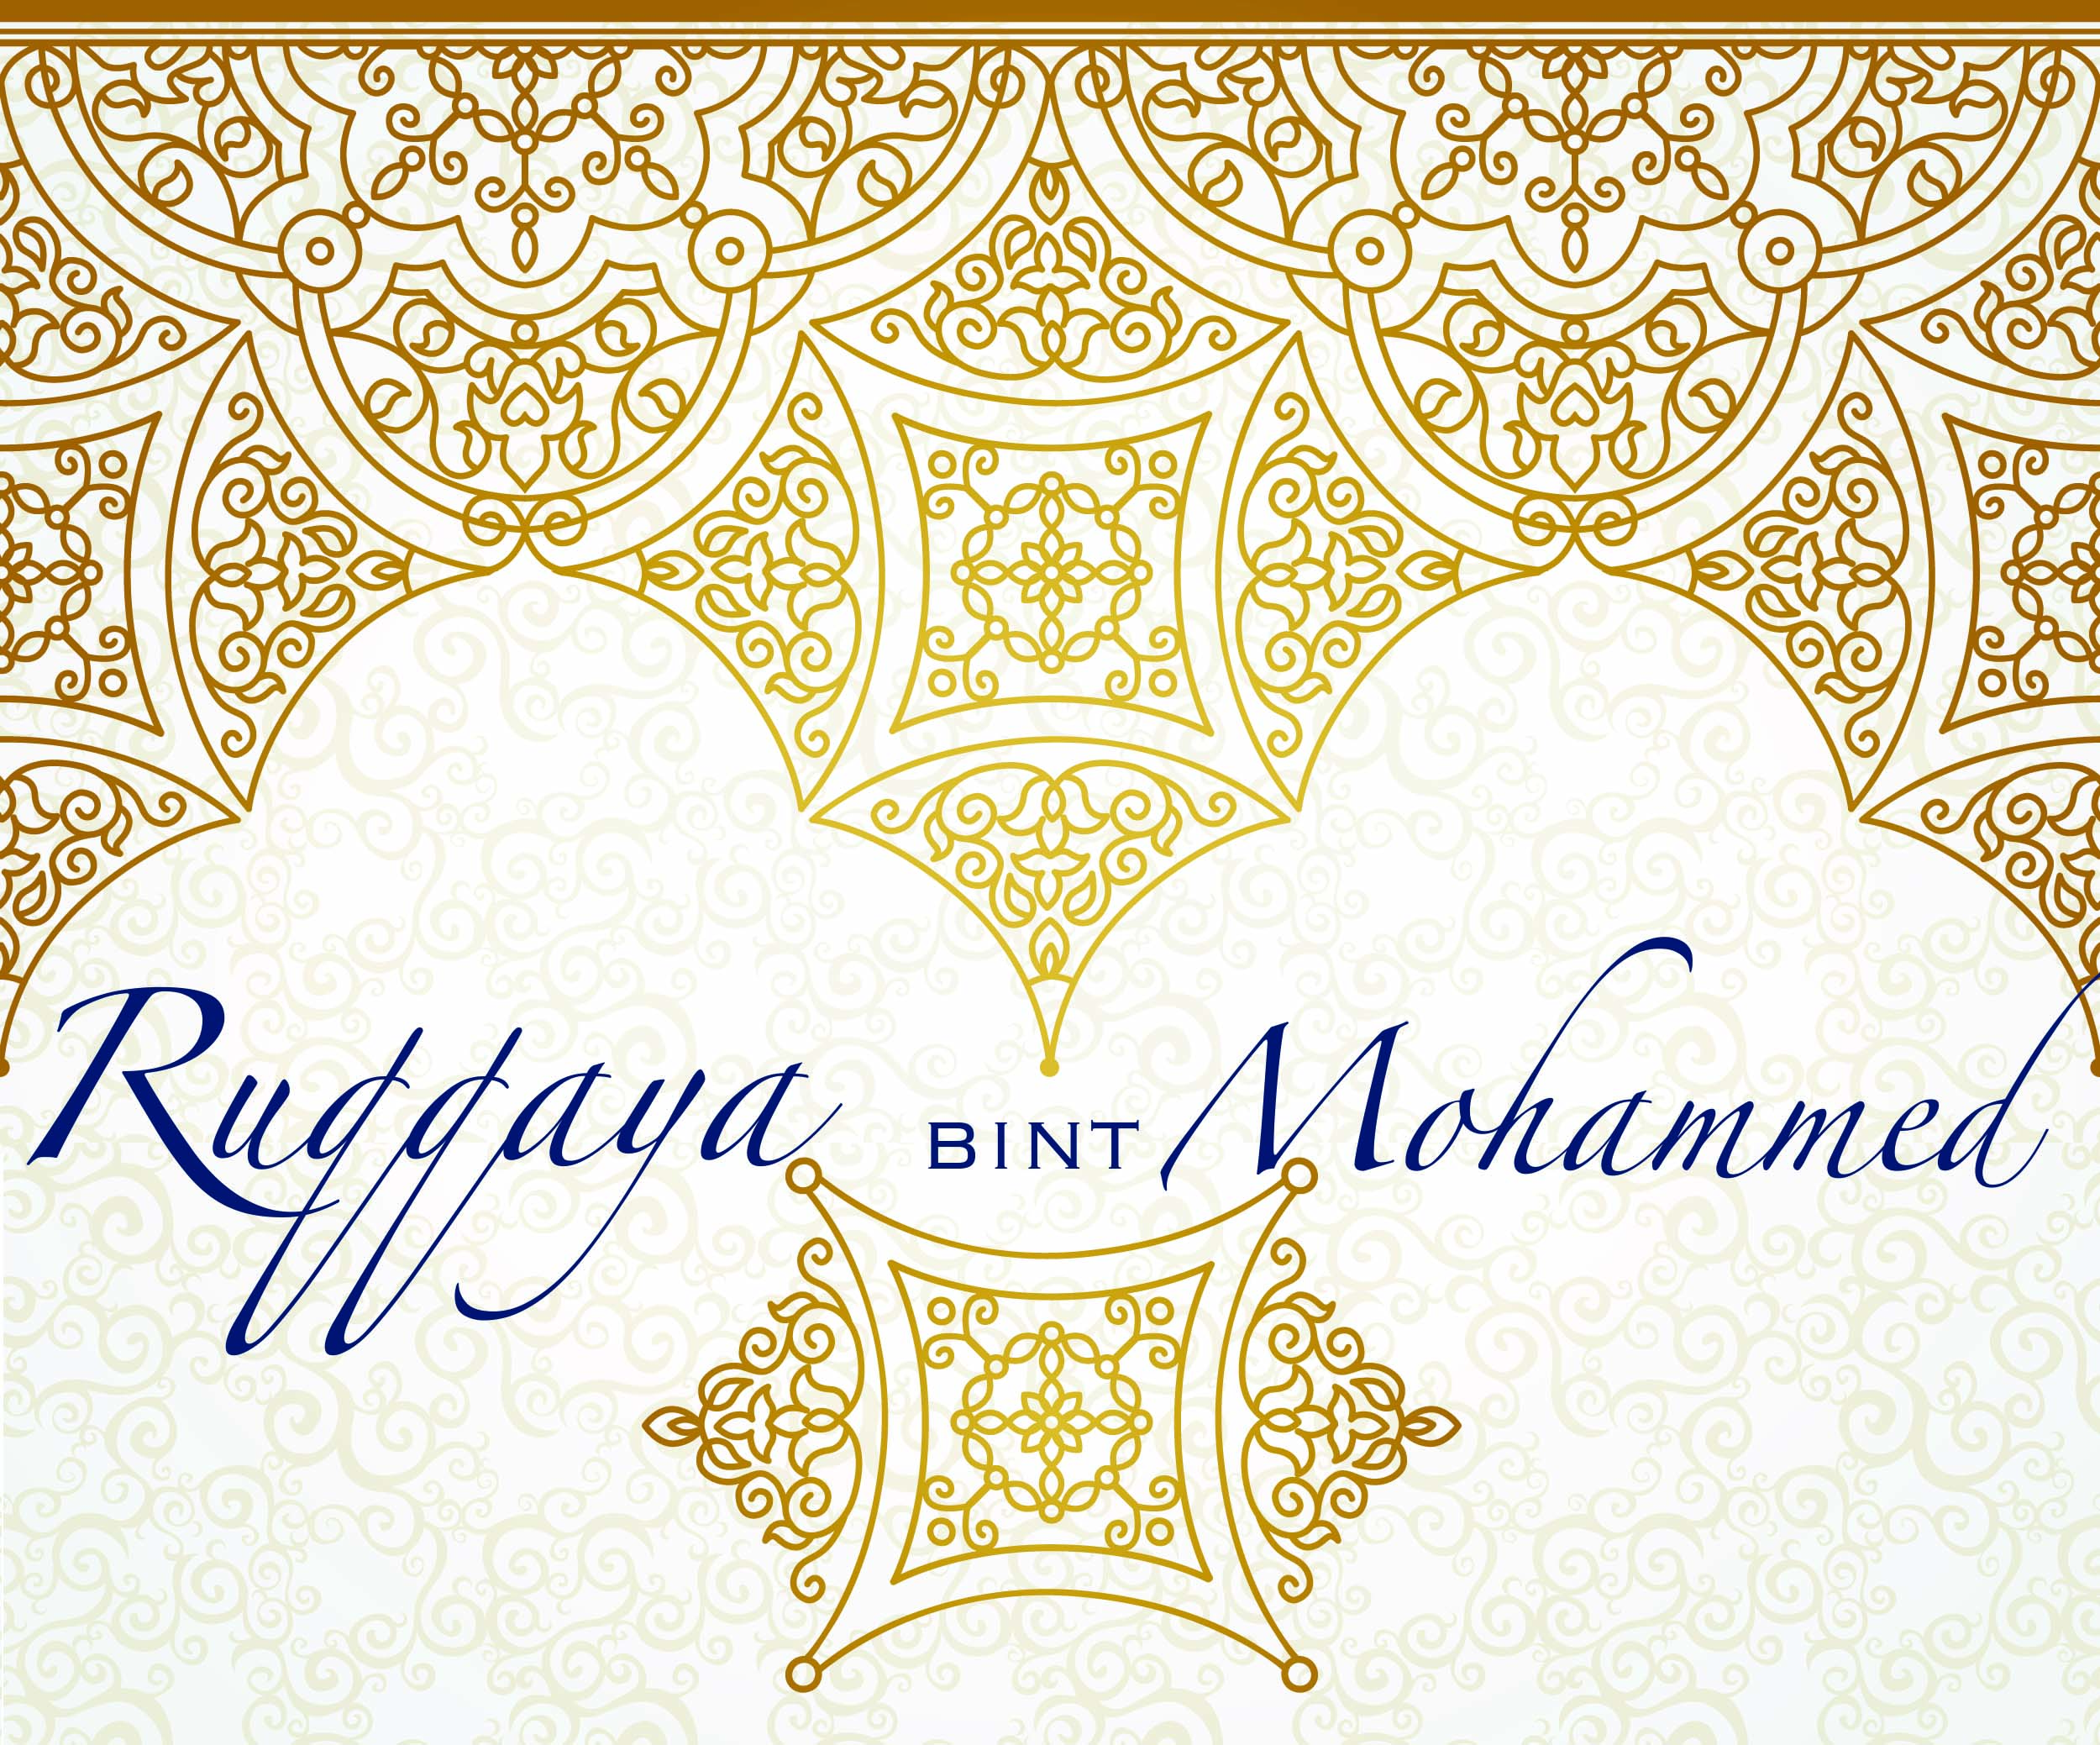 [Then] Ruqqayah bint Mohammed-The lady of two migrations